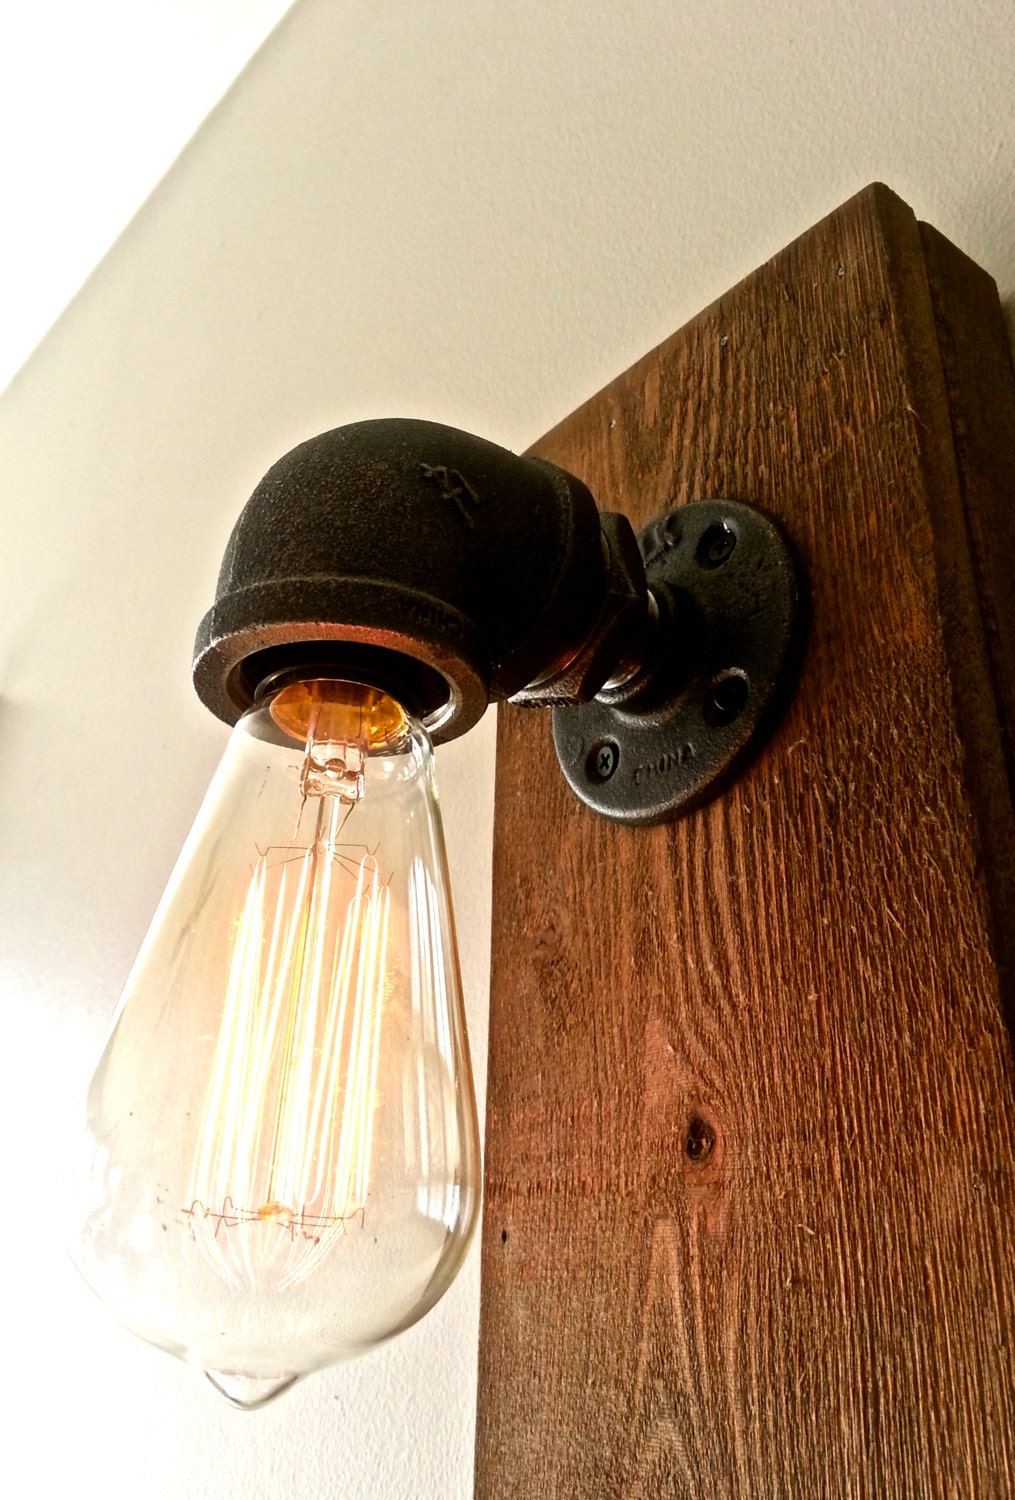 Black Pipe Wall Sconces : steel pipe wall sconce edison bulb fixture black by ChicagoLights